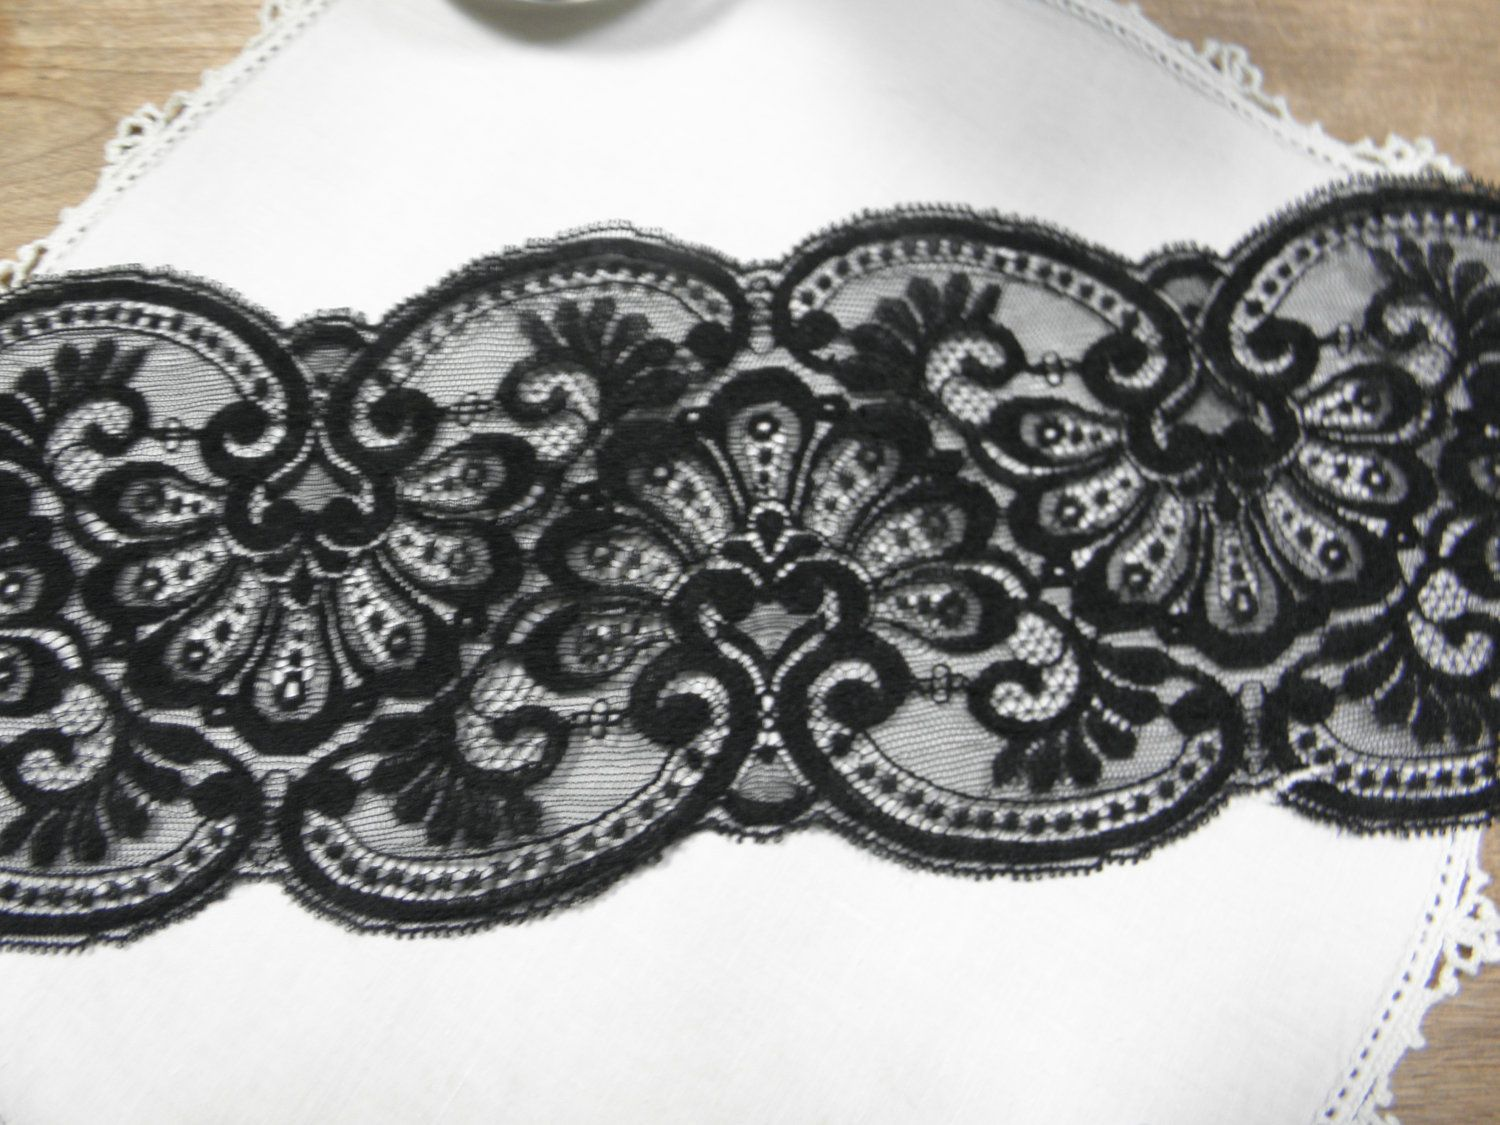 Vintage Black Lace 4 34 Inches Wide By 1 12 Yards Tattoos That I